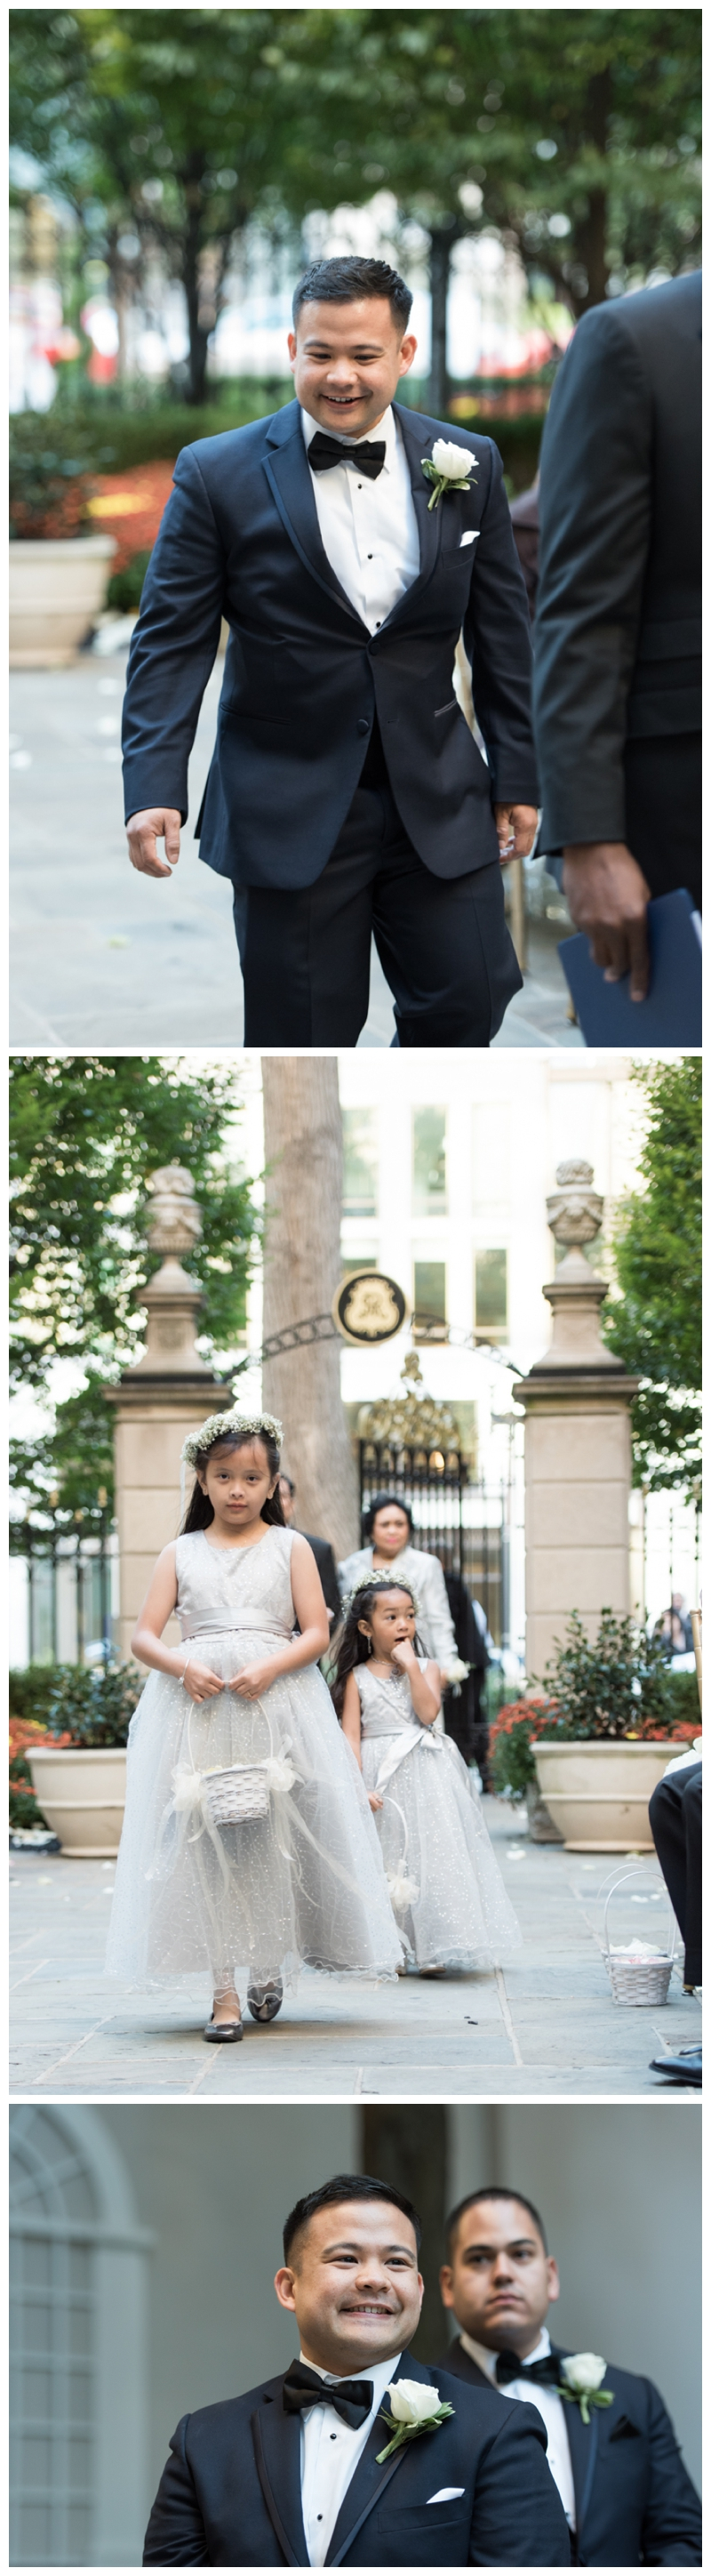 Wedding in Washington DC at the St Regis Hotel by Rachael Foster Photography_0033.jpg